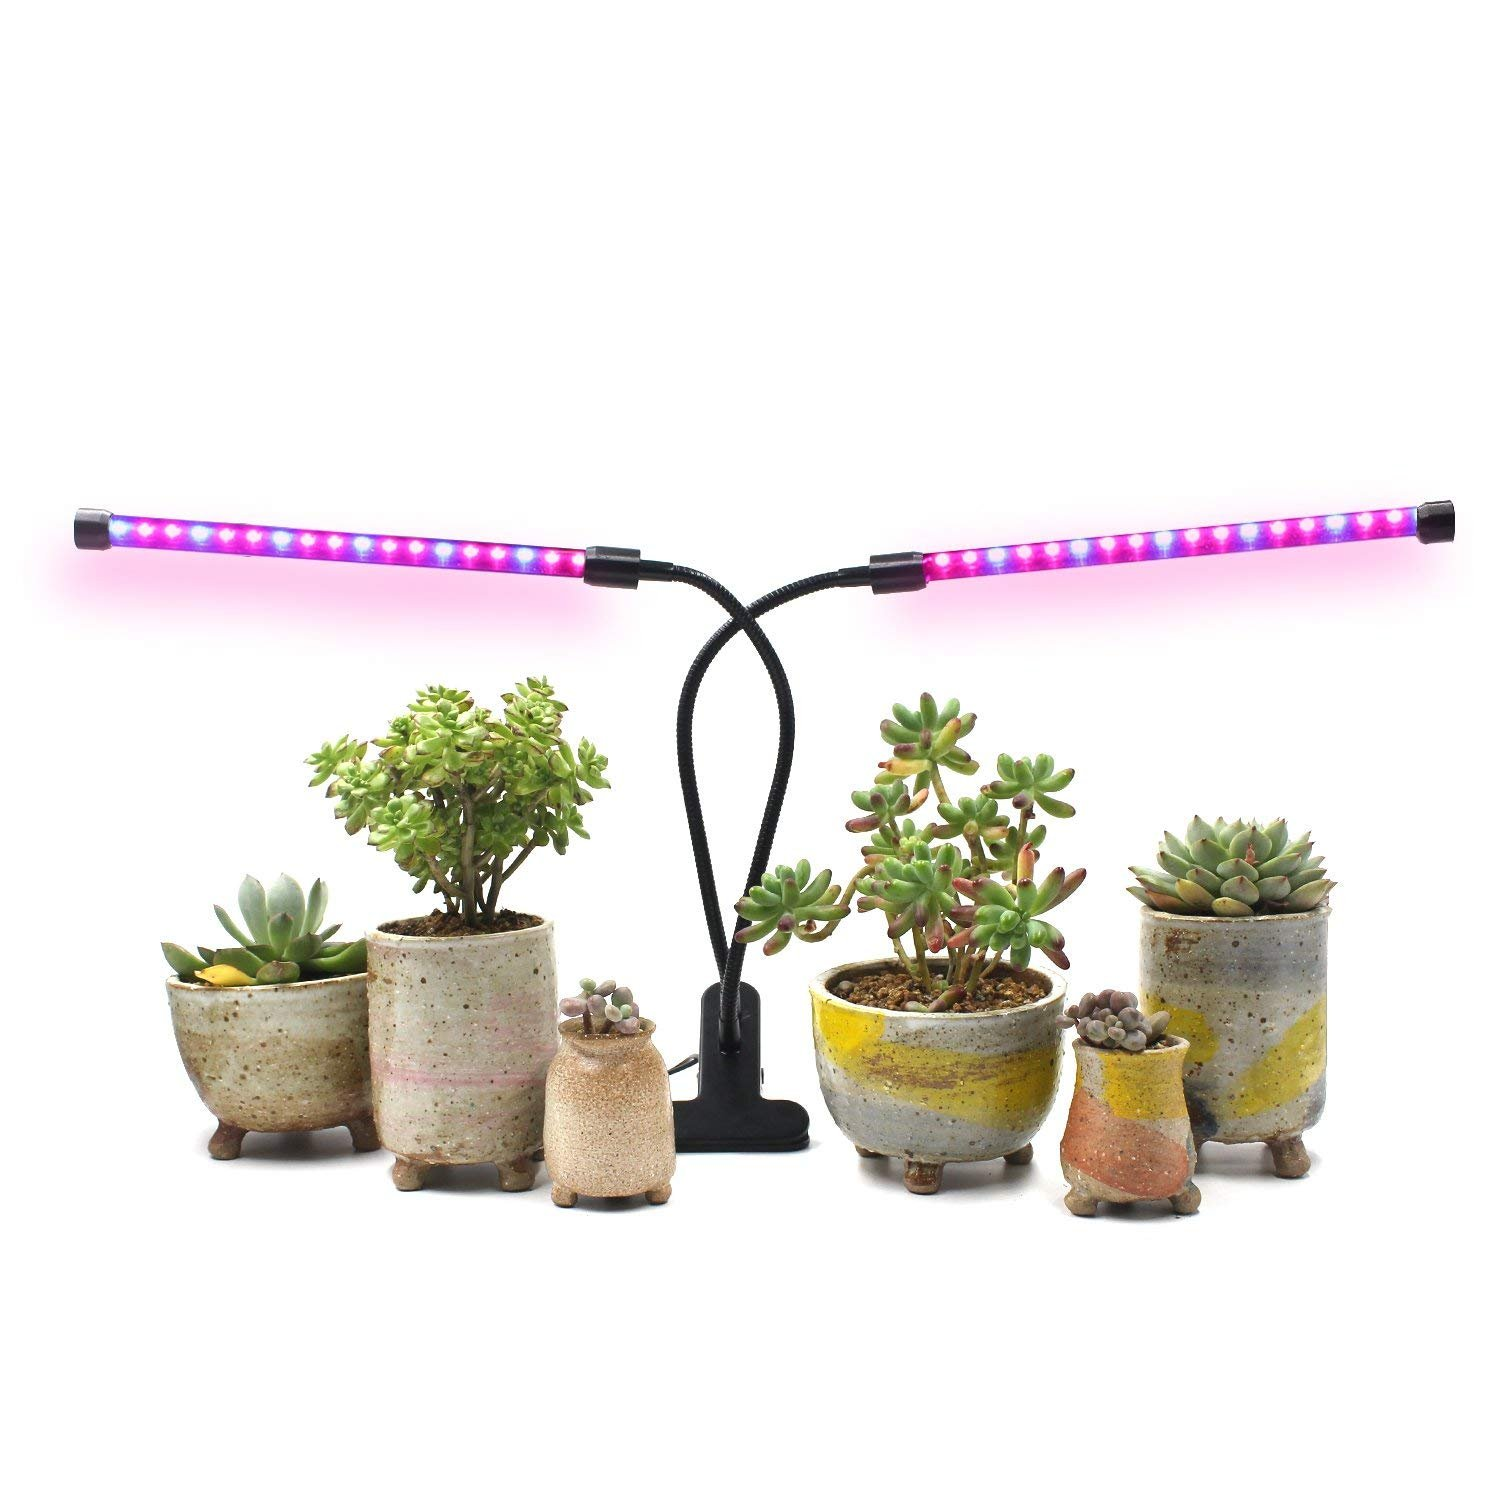 Grow Light for Indoor Plants, 2018 Latest Timing Function (Auto ON/OFF) with 36 LED (18W) Dual Head, Adjustable Flexible 360° Gooseneck, 3 Working Modes, 5 Dimmable Levels for Hydroponics Greenhouse Gardening Seeding Growing, Germination & Flowering E